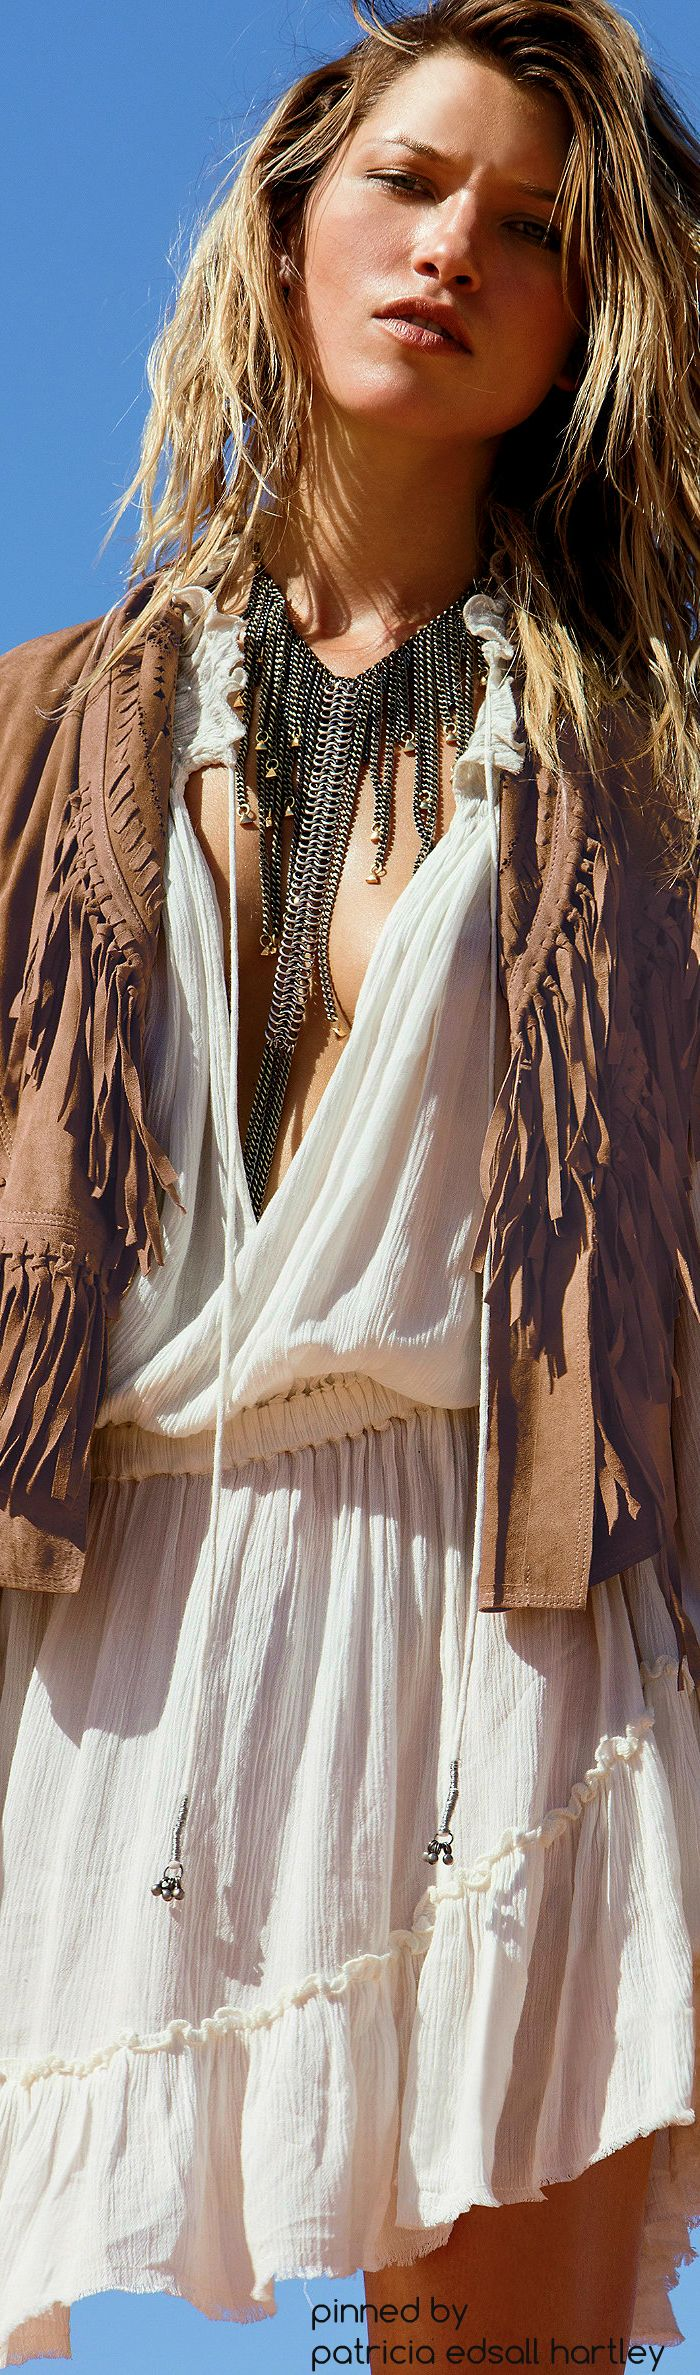 18012 Best Images About Bohemian On Pinterest Boho